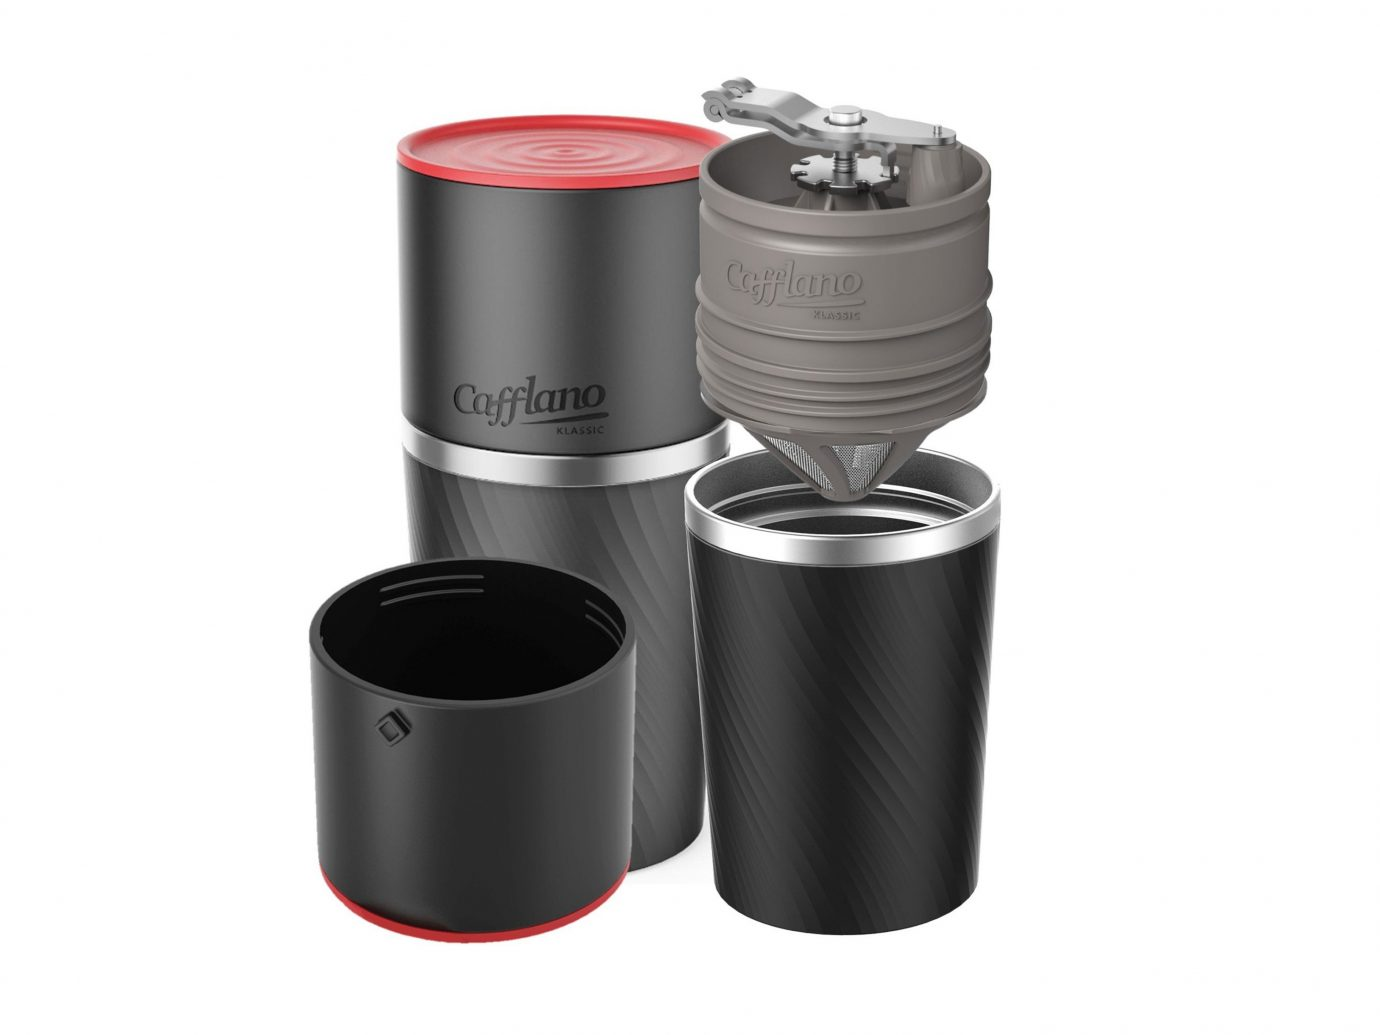 Style + Design man made object cup product cylinder camera lens